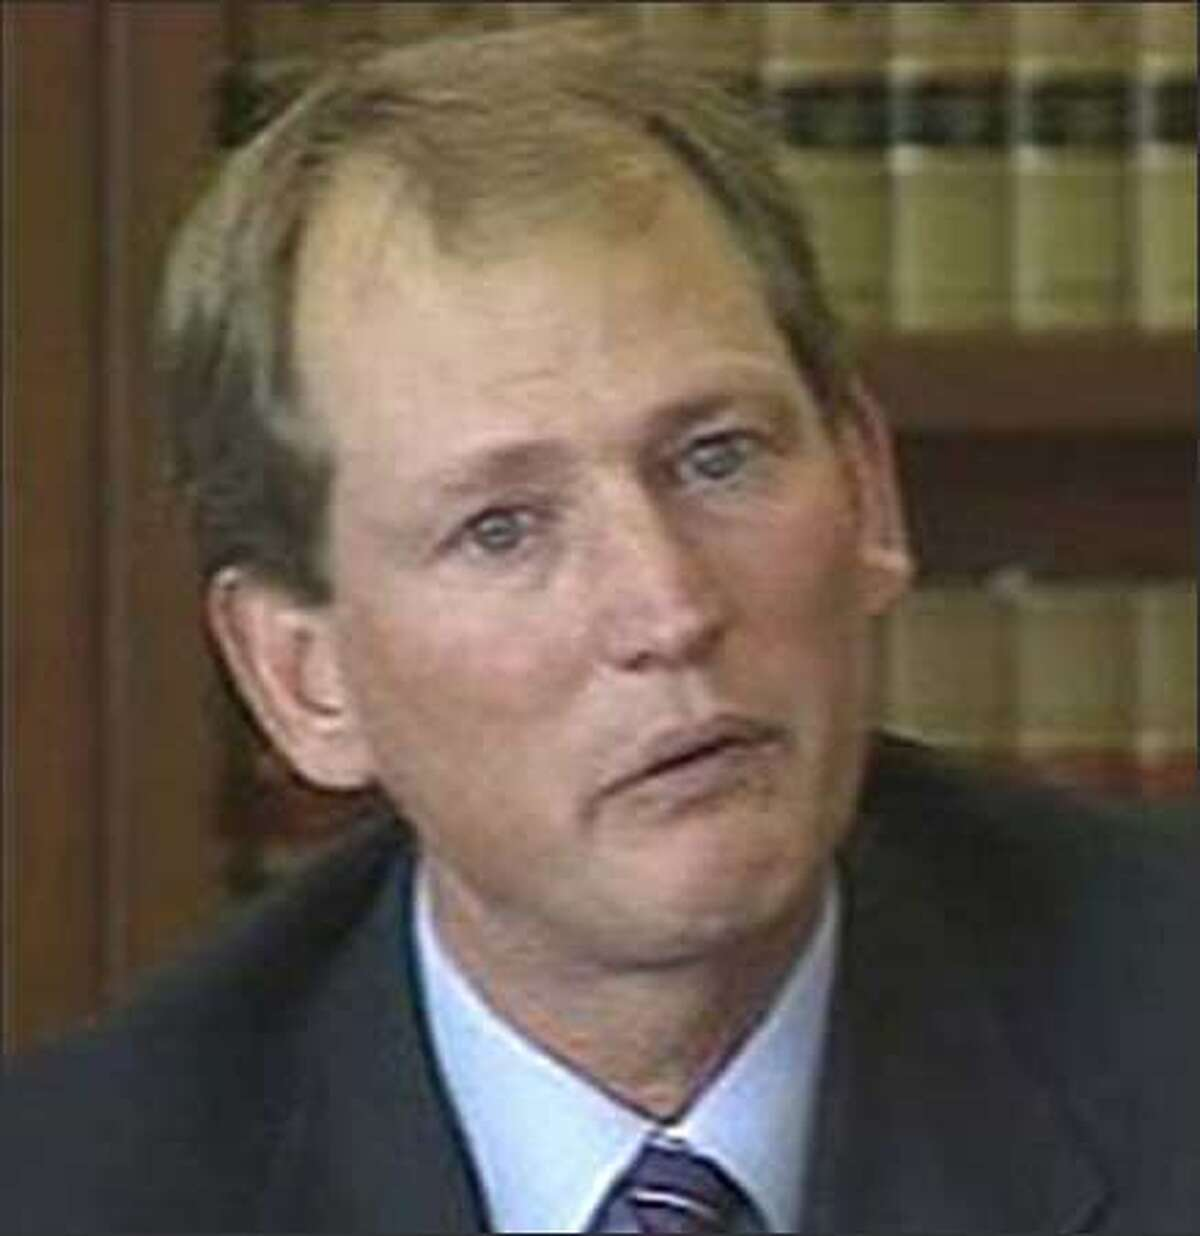 Former UW Coach Rick Neuheisel cries on the witness stand; photo taken from video.